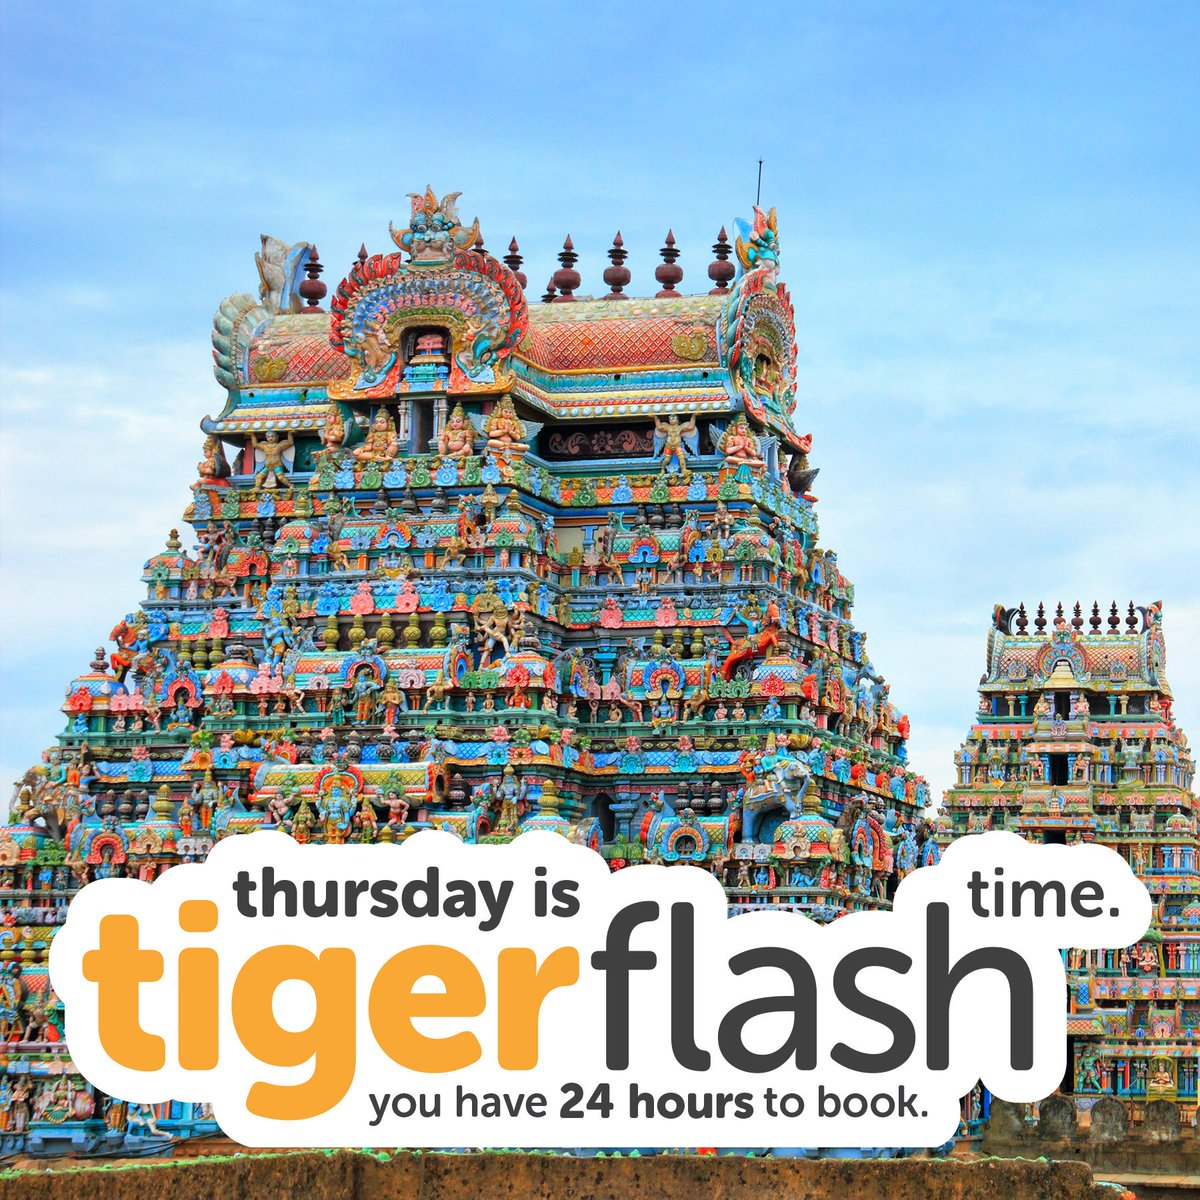 Travel to Trichy from only $139* before we bid #Tigerflash goodbye! More good-buys: https://t.co/tESRzrZmAl Look out for more at @flyscoot! https://t.co/XujBsathVX